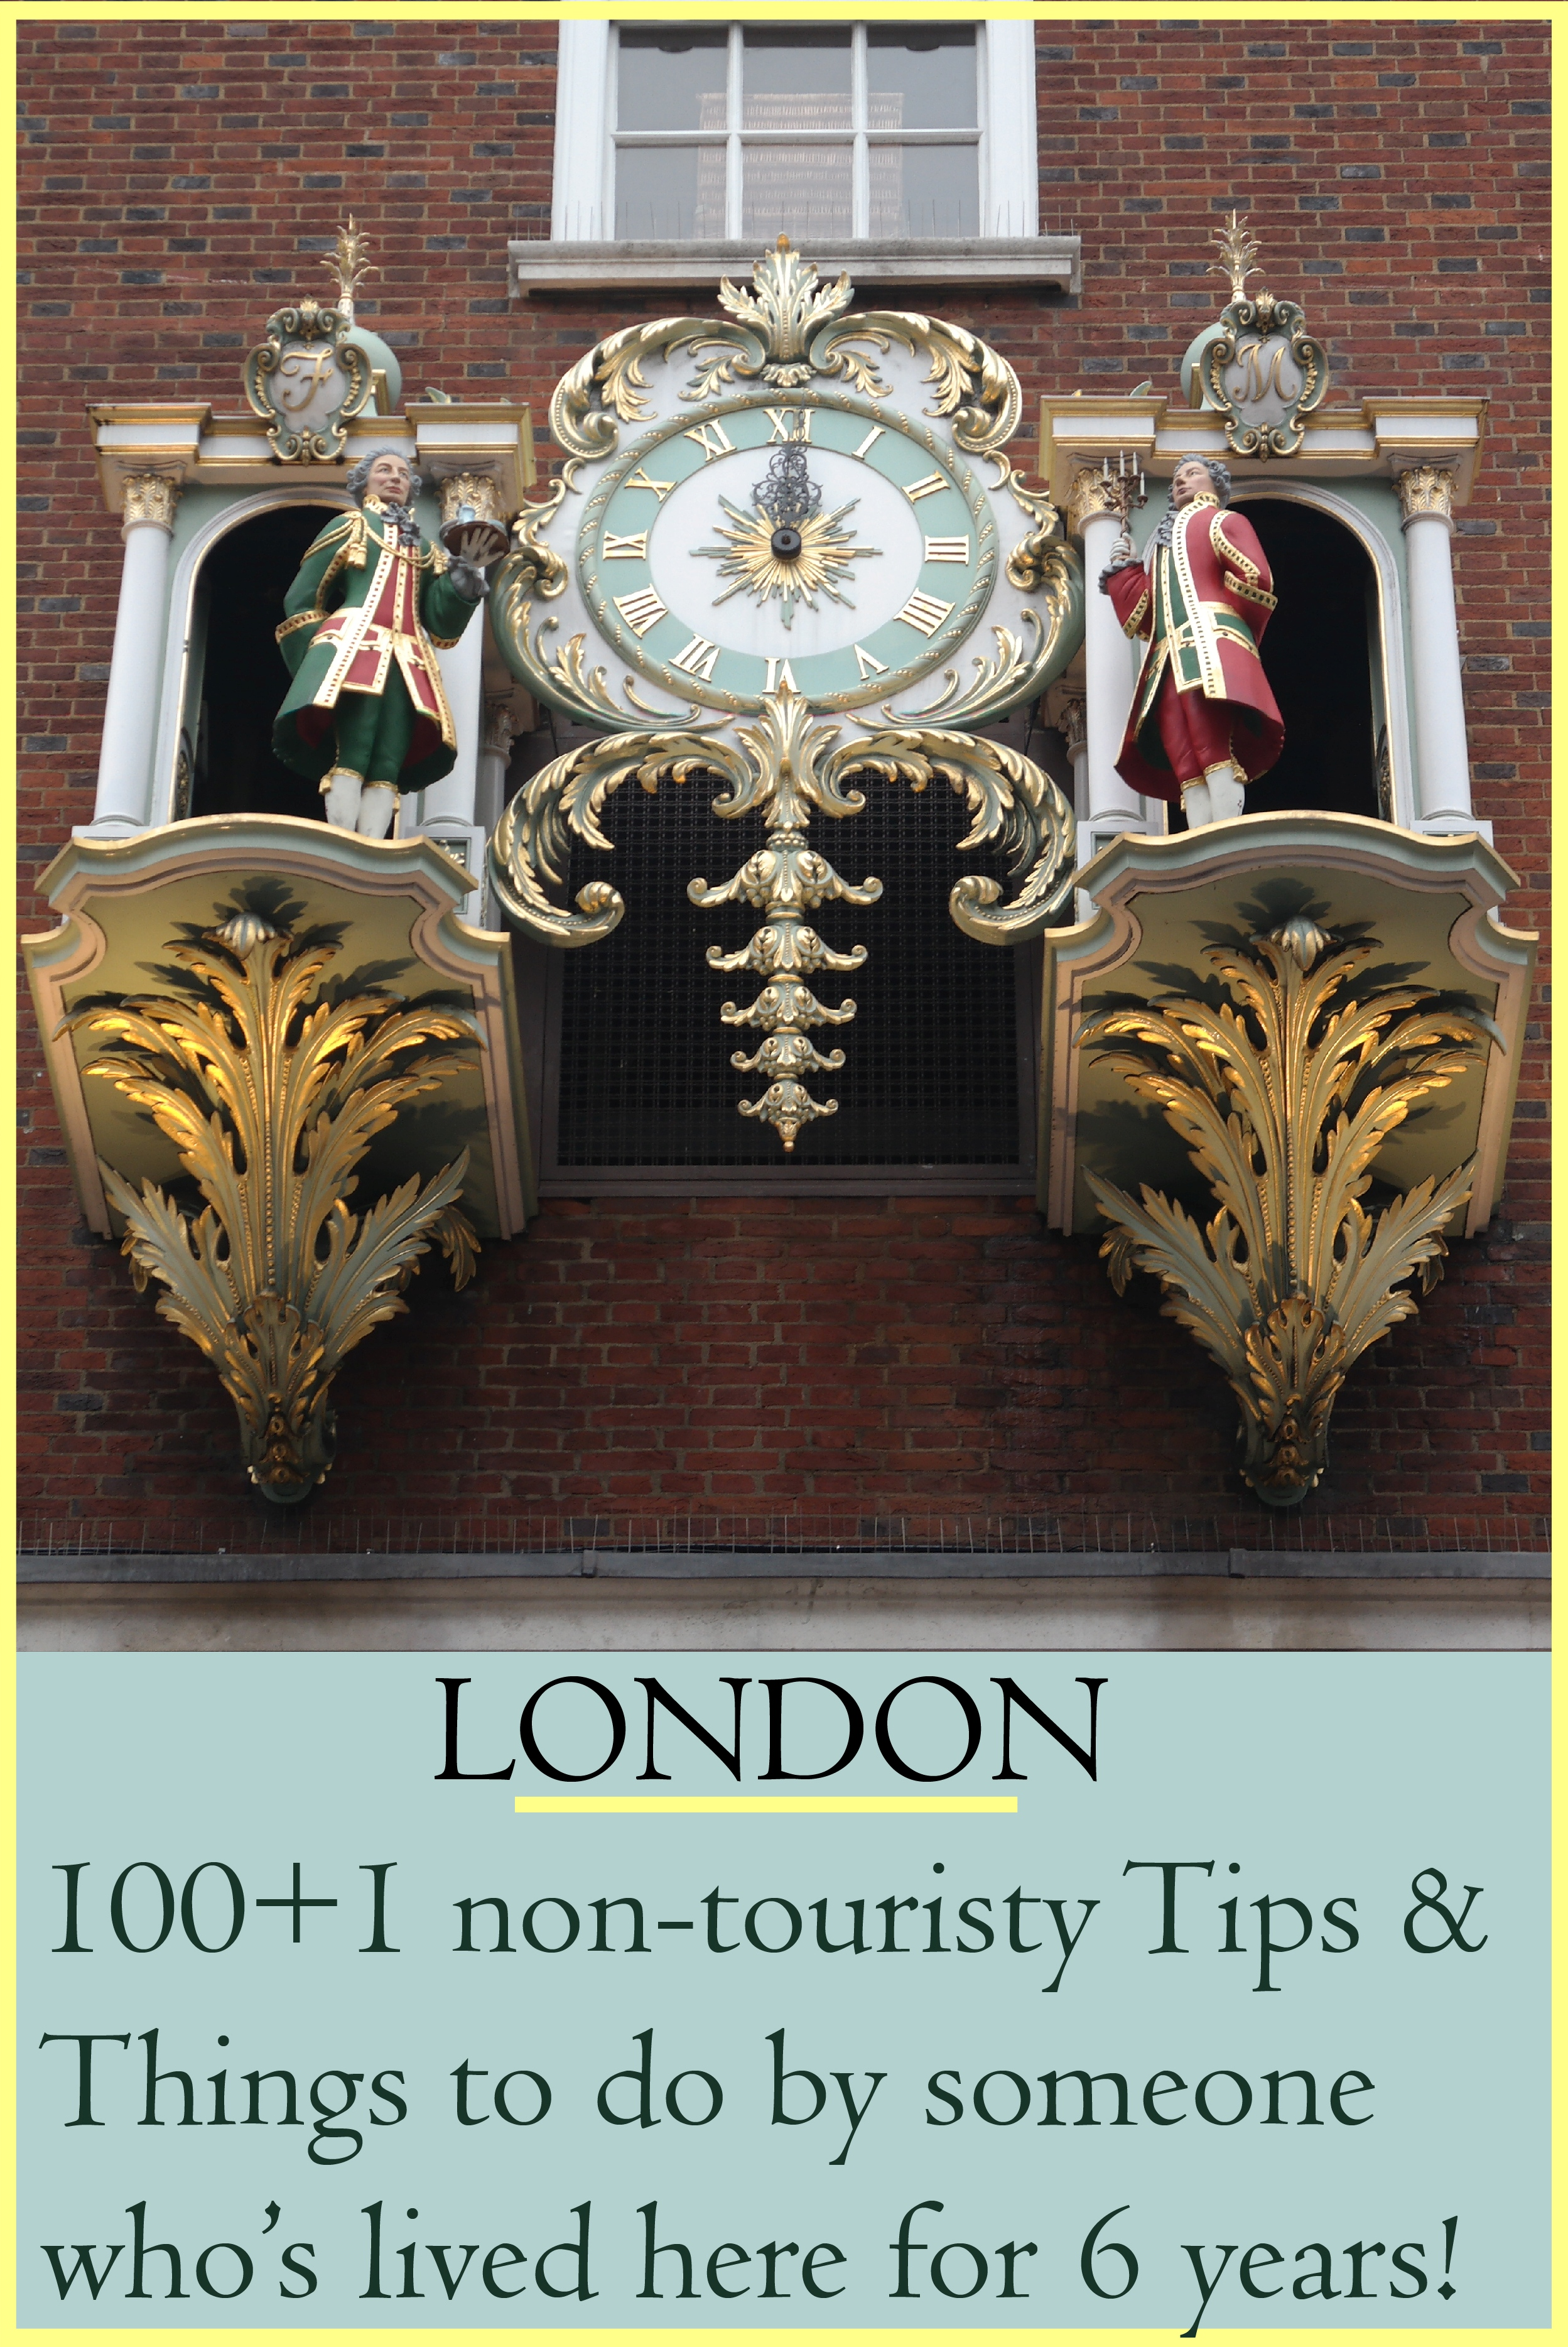 Non-touristy things to do in London